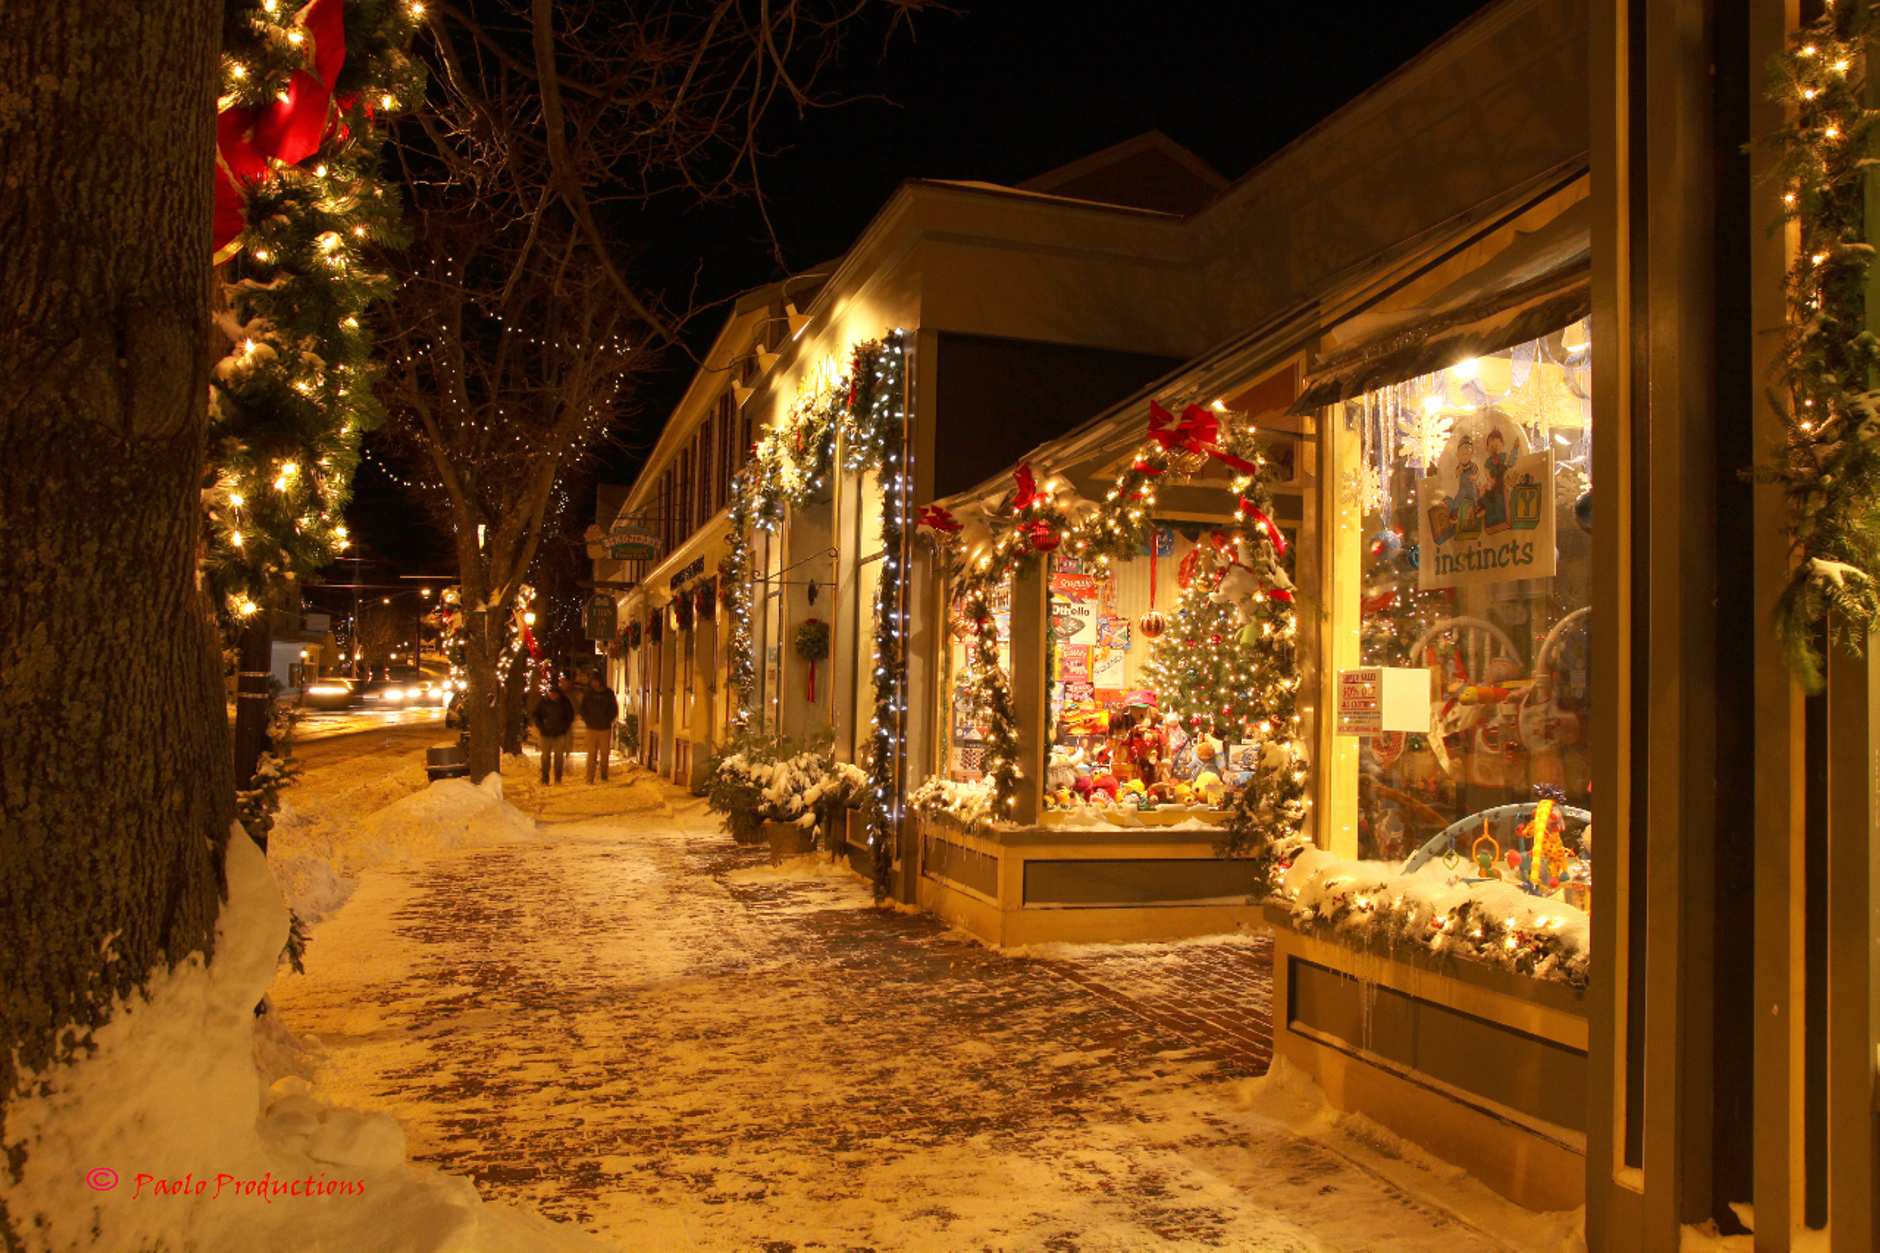 Christmas By The Sea Camden Maine.Towns With The Most Christmas Spirit Vagabond Summer